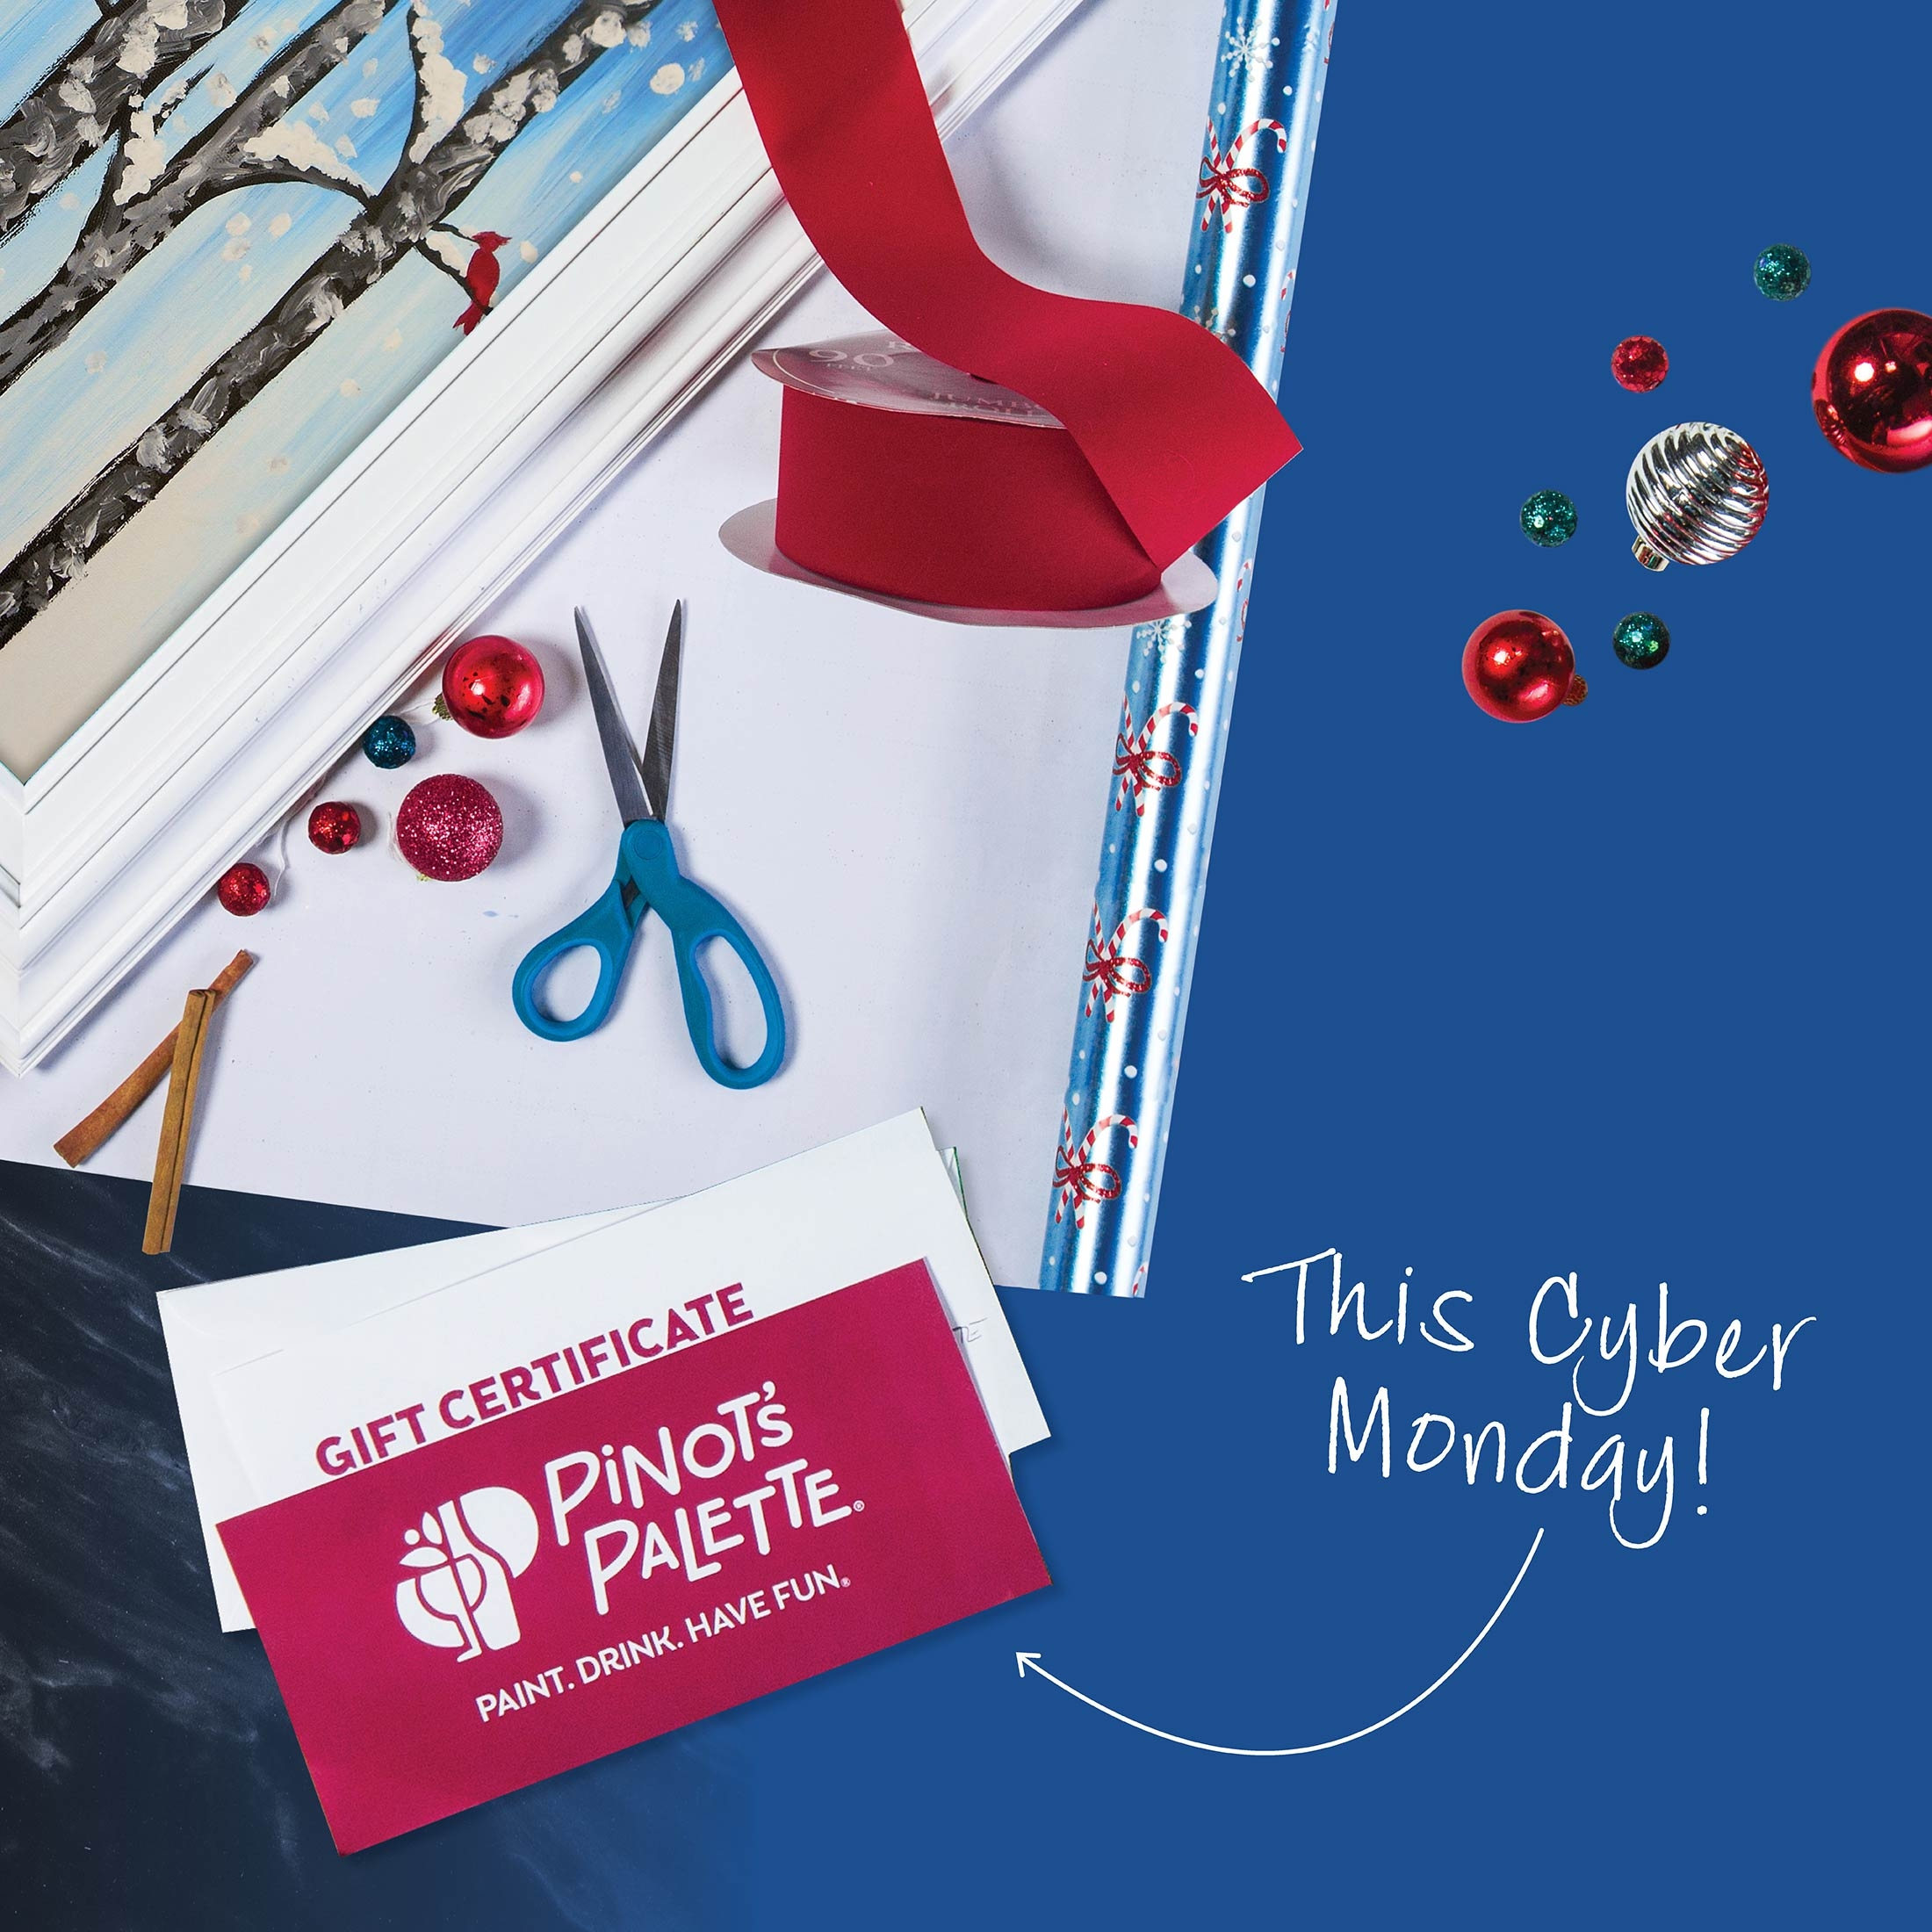 Cyber Monday At Pinot's Palette